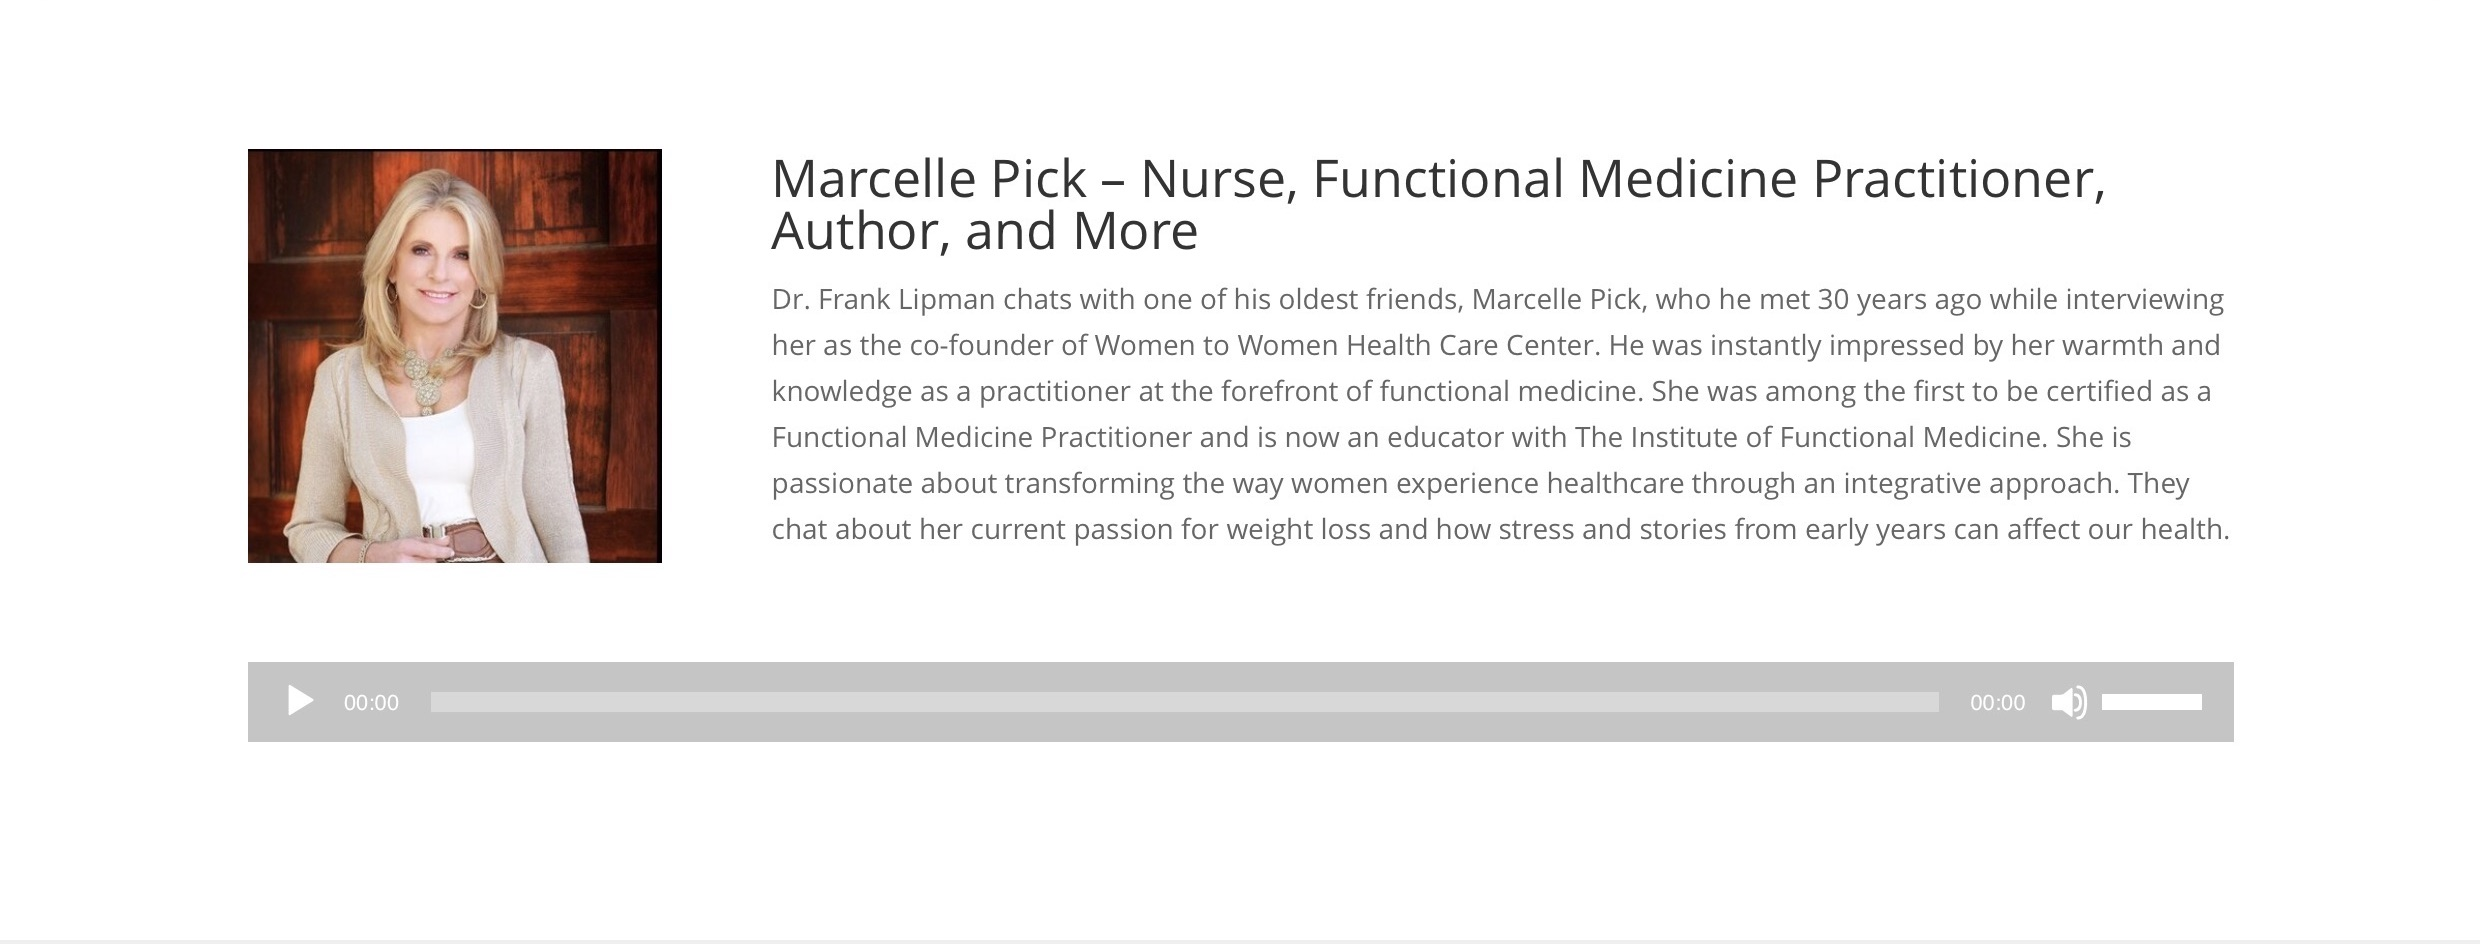 Dr. Frank Lipman Podcast with Marcelle Pick